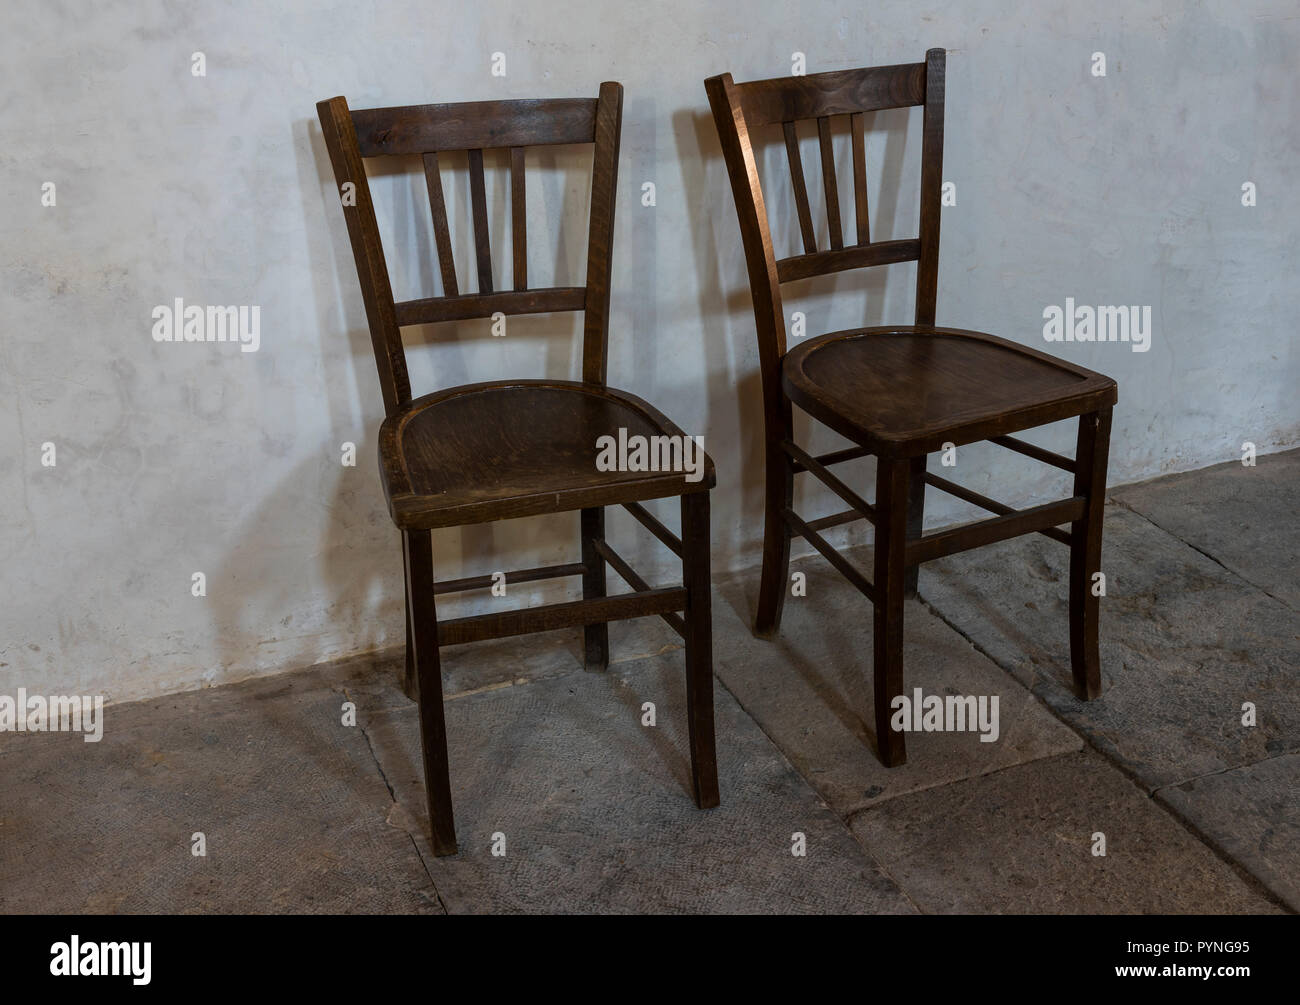 Pierre Bourgogne Perrecy Les Forges France August 2 2018 Two Chairs In